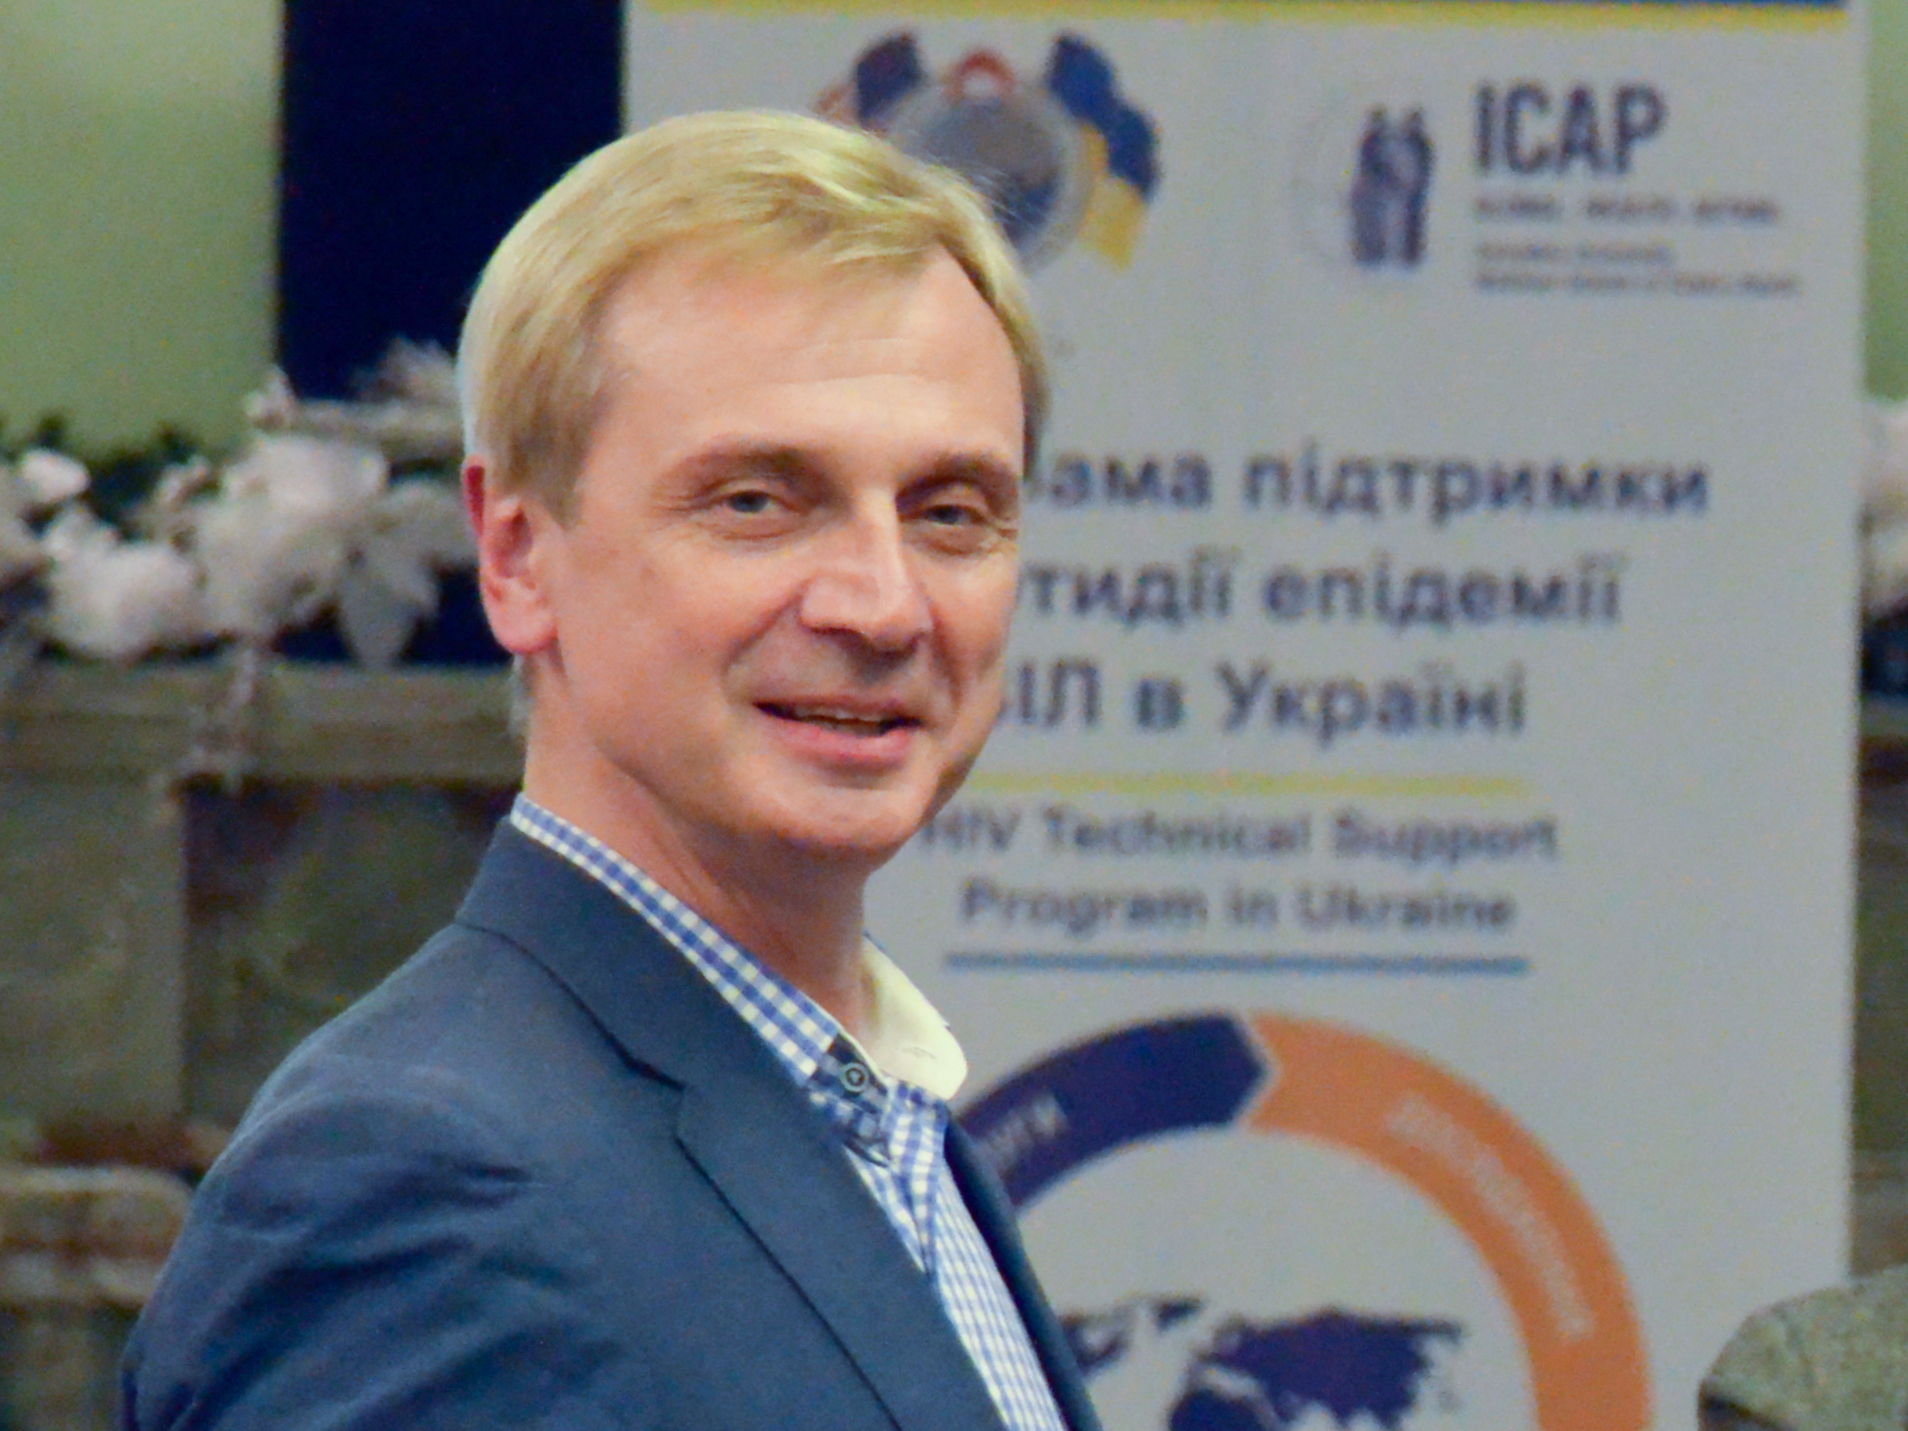 ICAP QI training in Ukraine